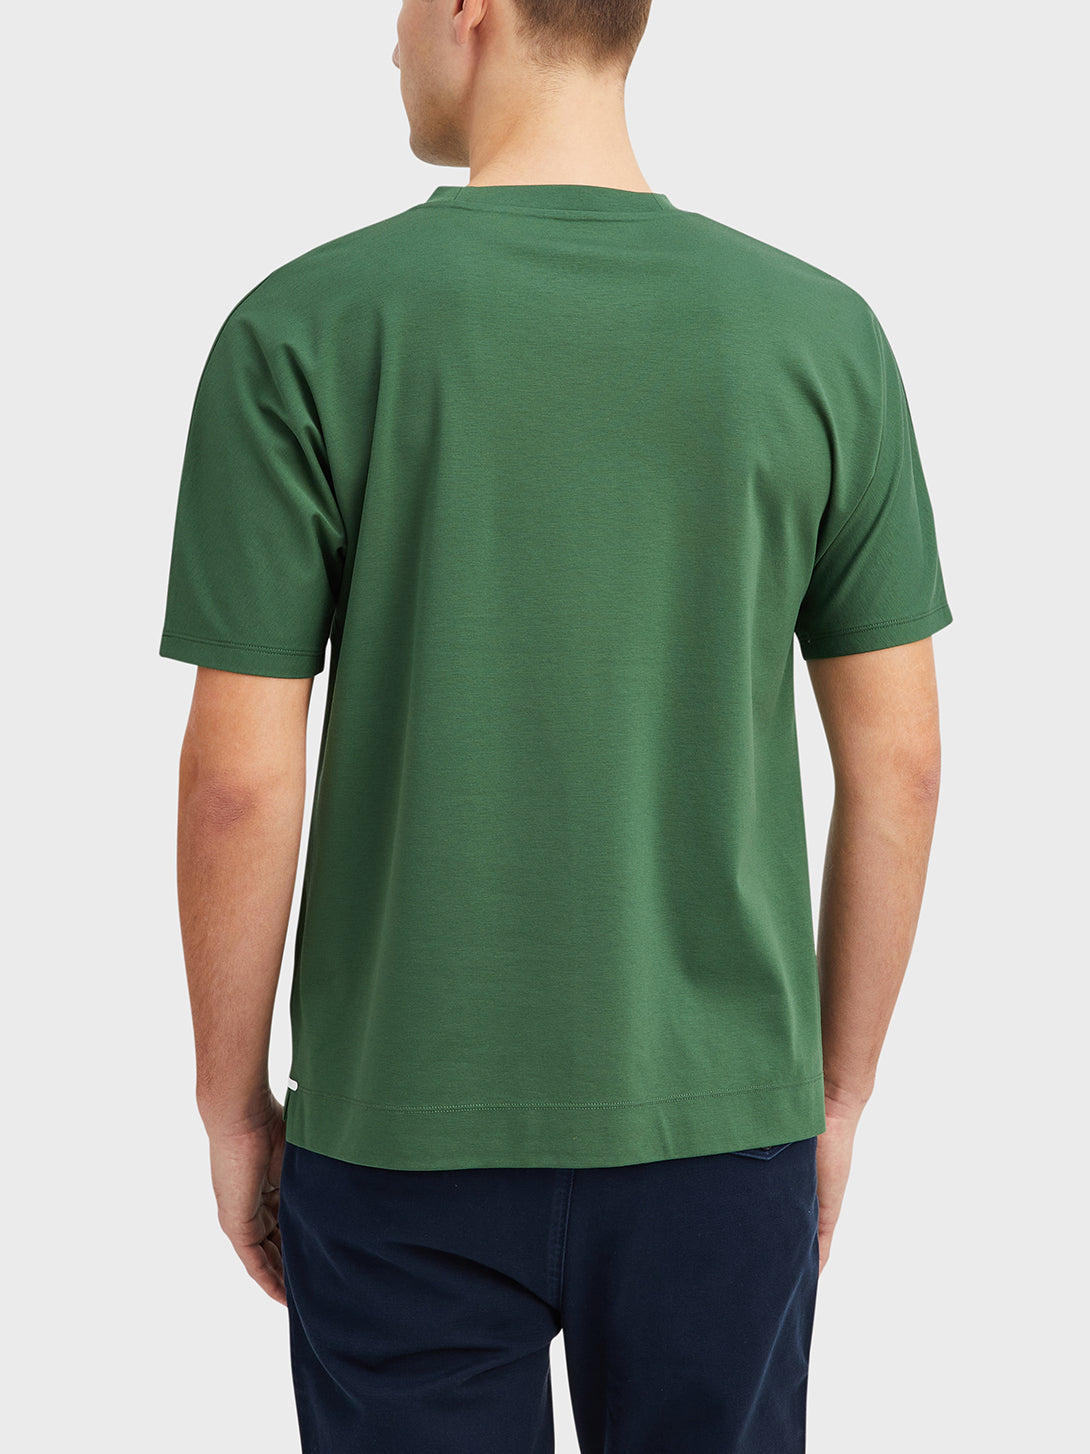 Green Pastures Reno Crew Neck Tee Men's cotton t-shirts ONS Clothing